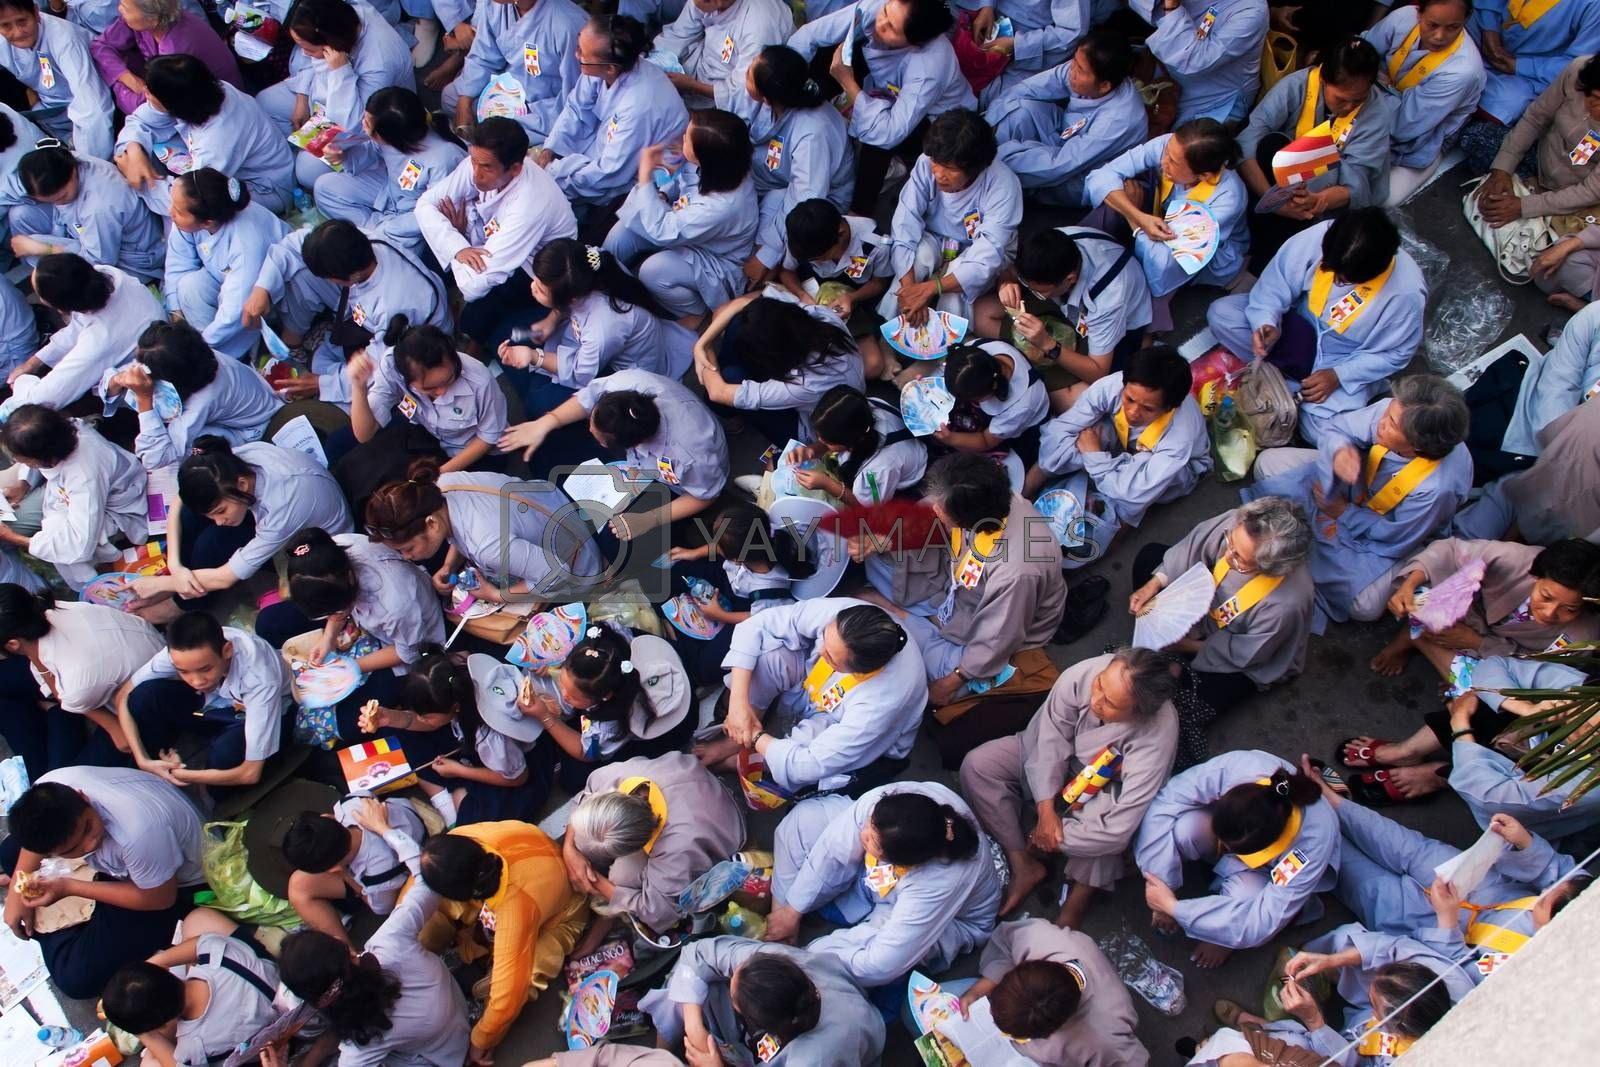 Impression, overcrowded of buddhist at Pagoda on anniversary  by xuanhuongho